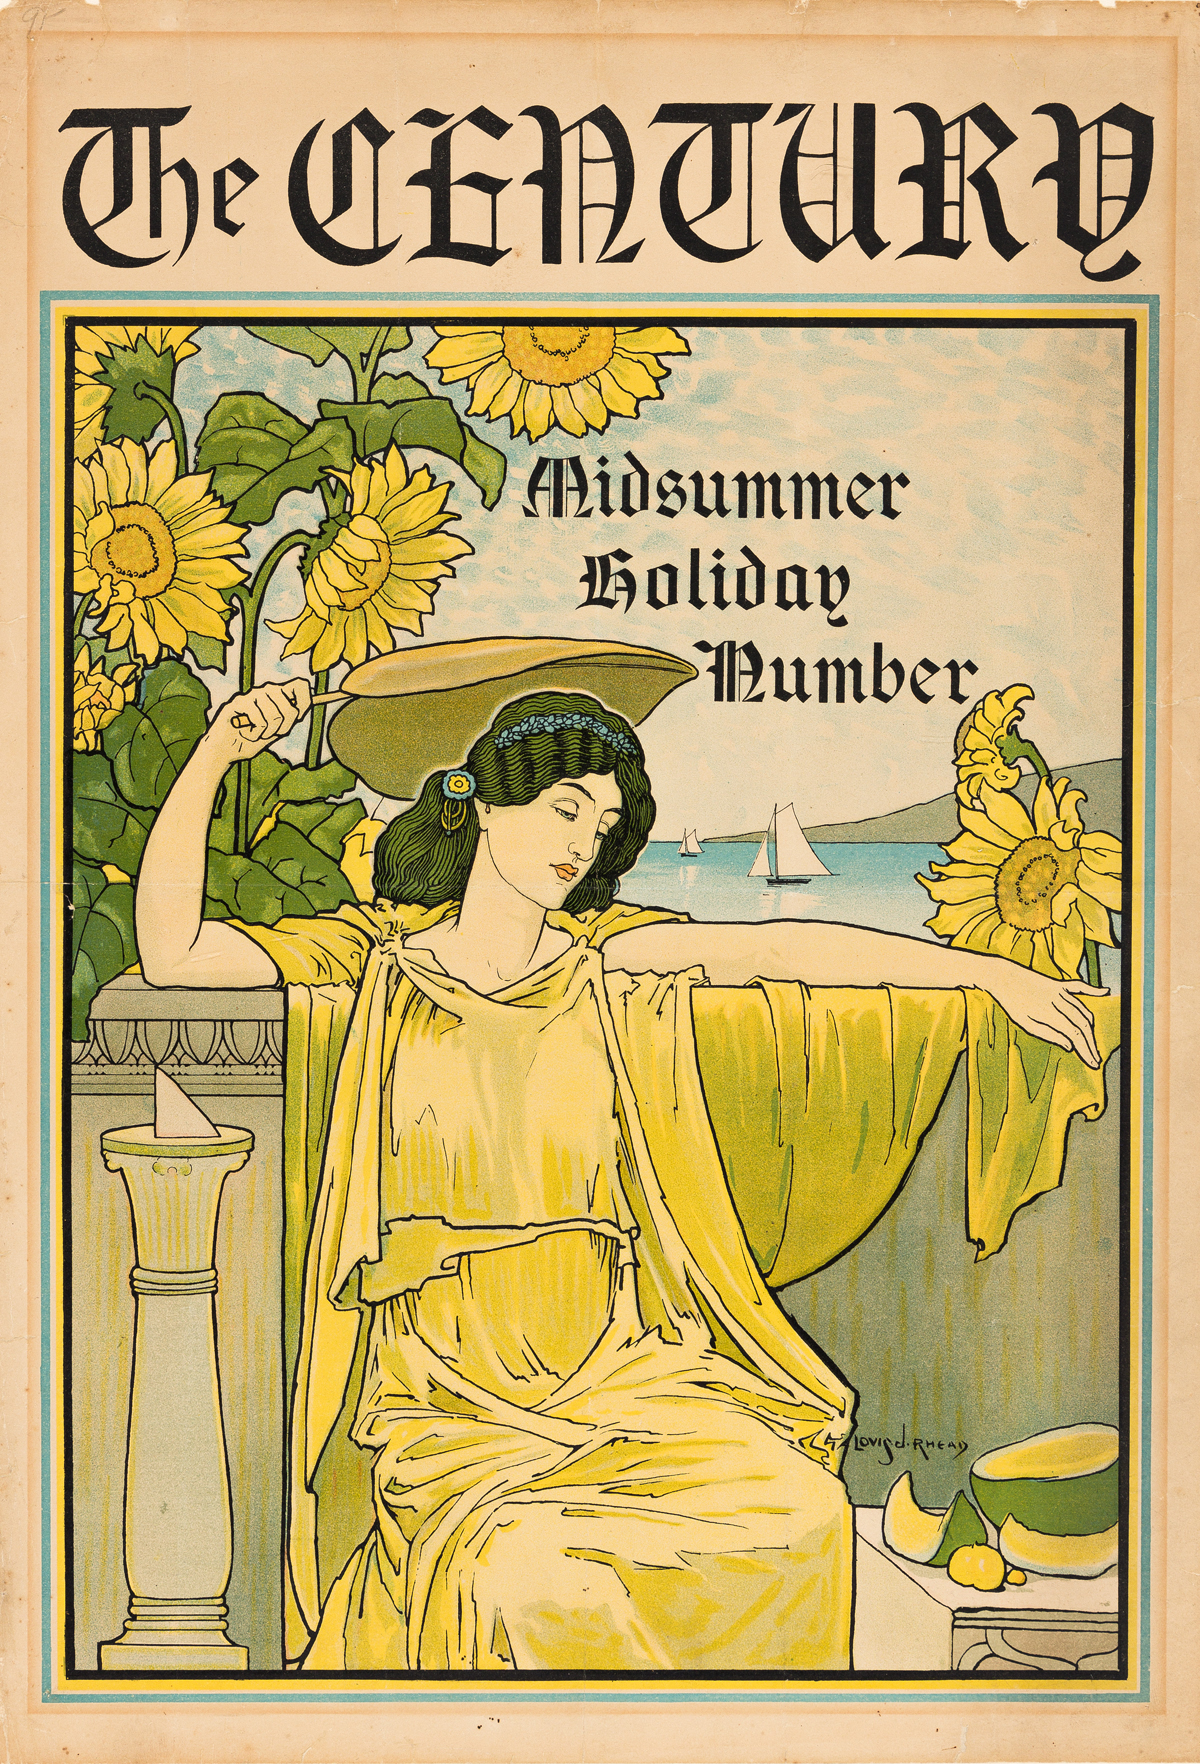 LOUIS J. RHEAD (1858-1926).  THE CENTURY / MIDSUMMER HOLIDAY NUMBER. 1895. 20x14 inches, 50x35 cm.